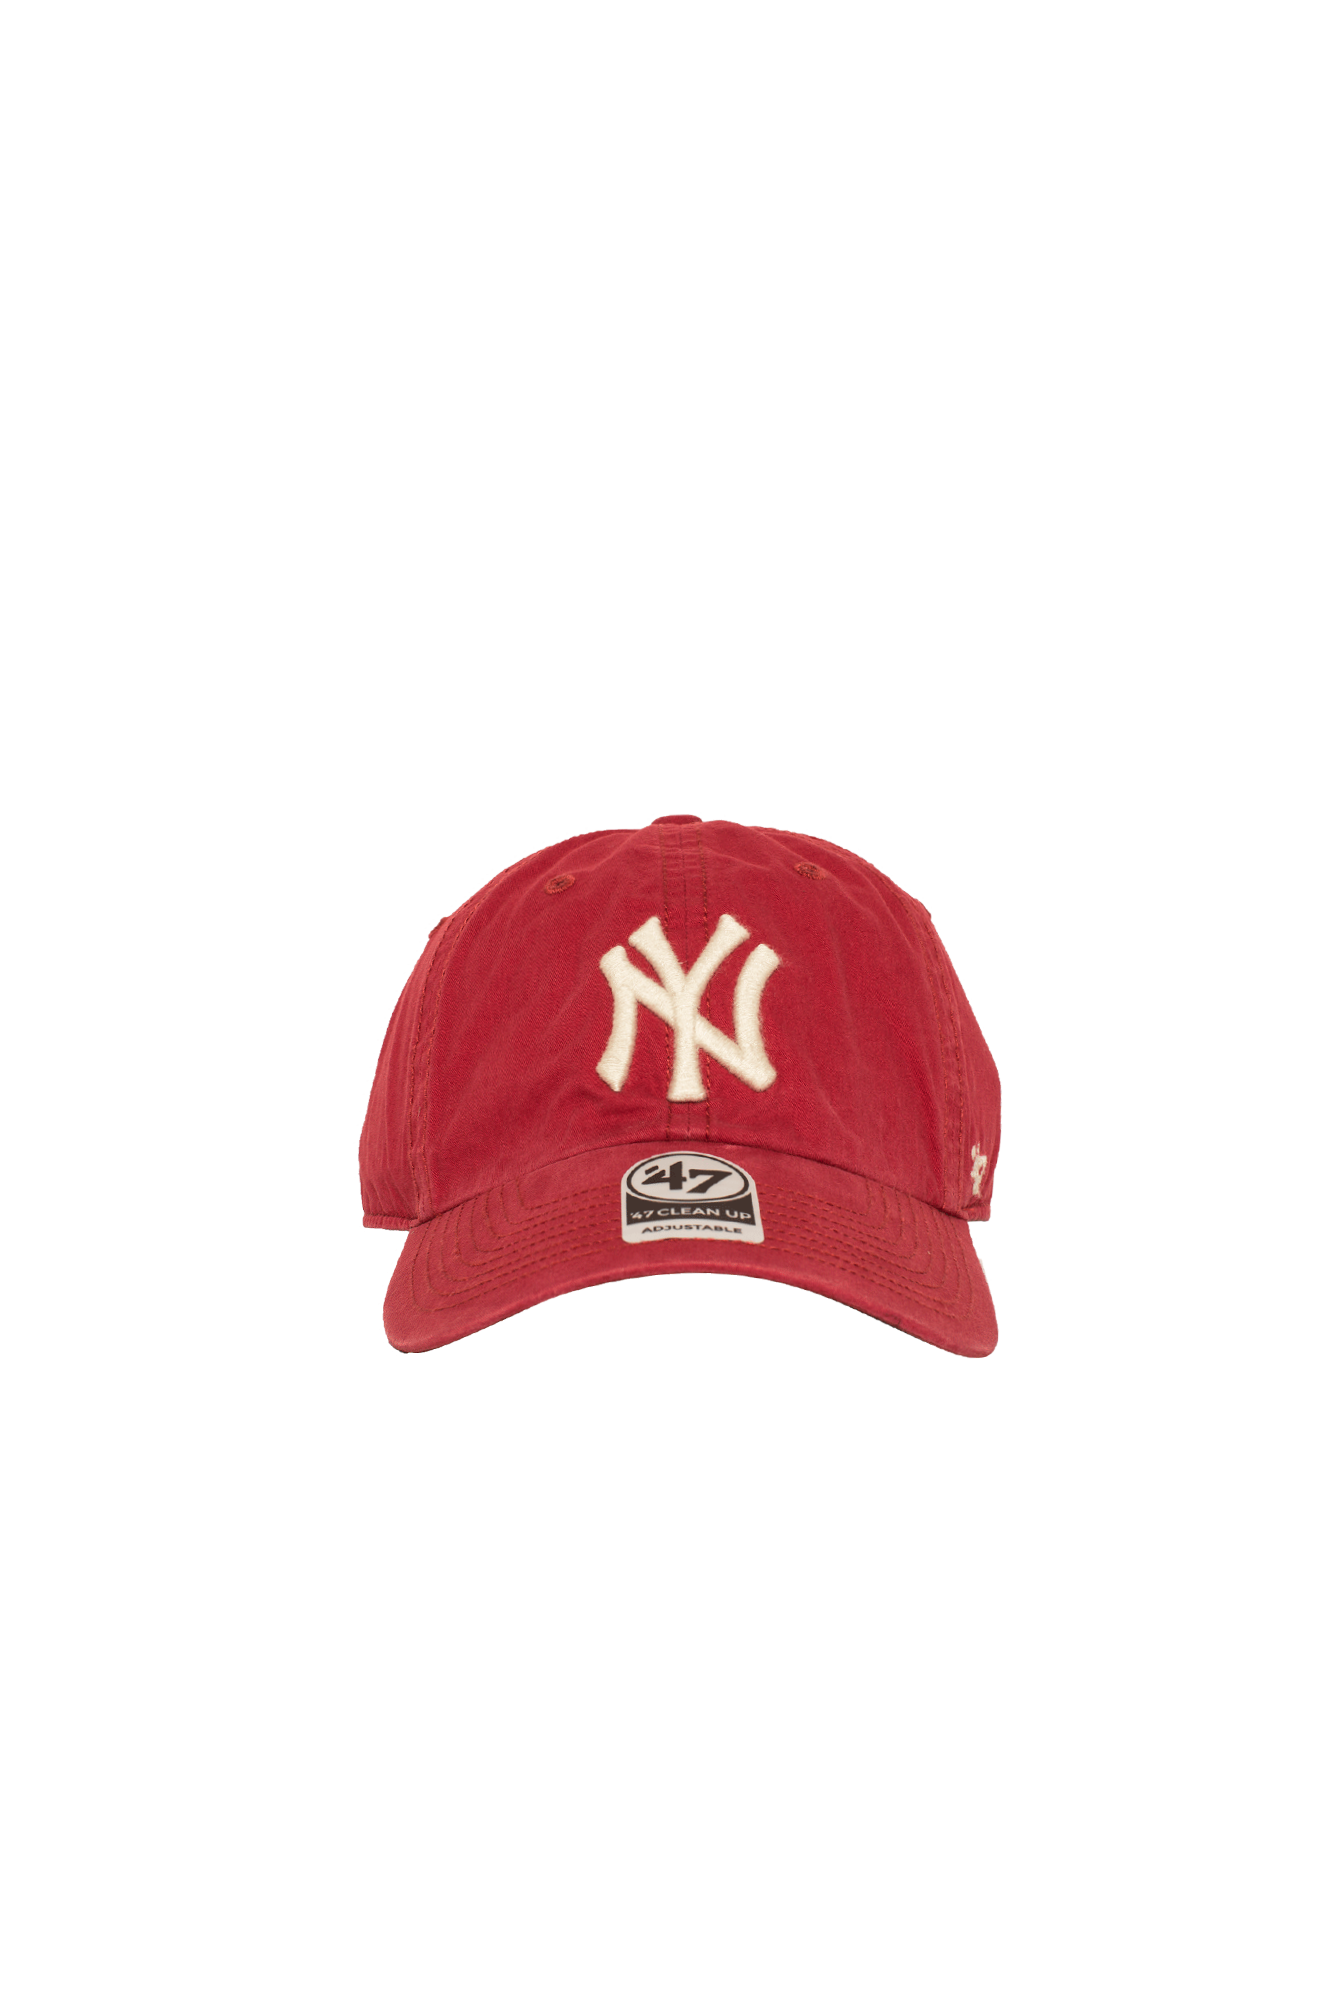 47 Cappelli Hudson Clean Up New York Yankees Rosso 47-B-HUDSN17#OWS#XY#OS - One Block Down